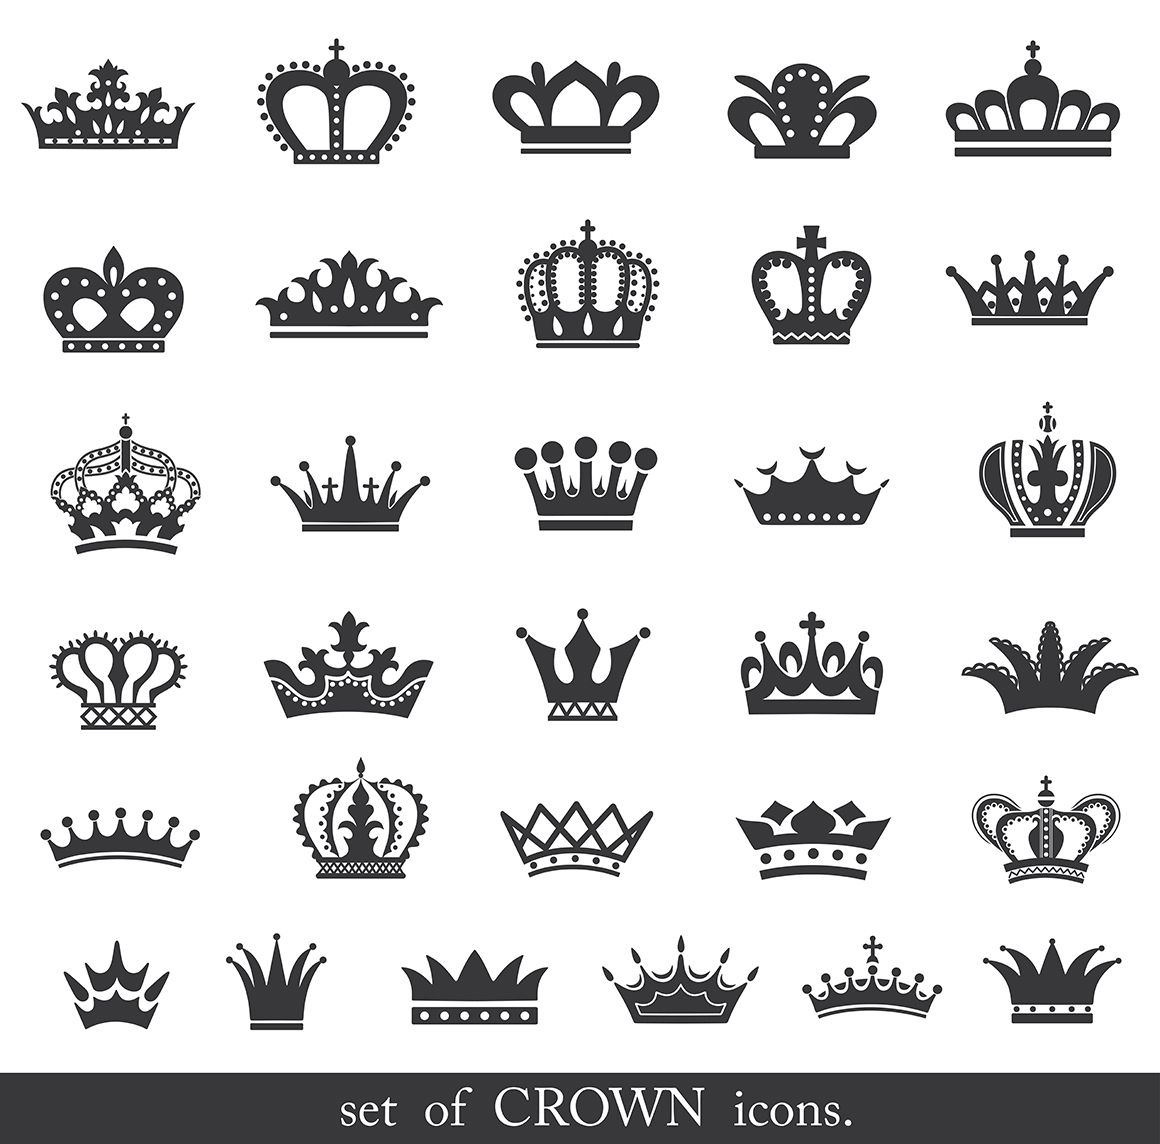 Set Of Gold And Silver Crown Icons 24864 Icons Design Bundles Crown Finger Tattoo Crown Tattoo Design Crown Tattoo